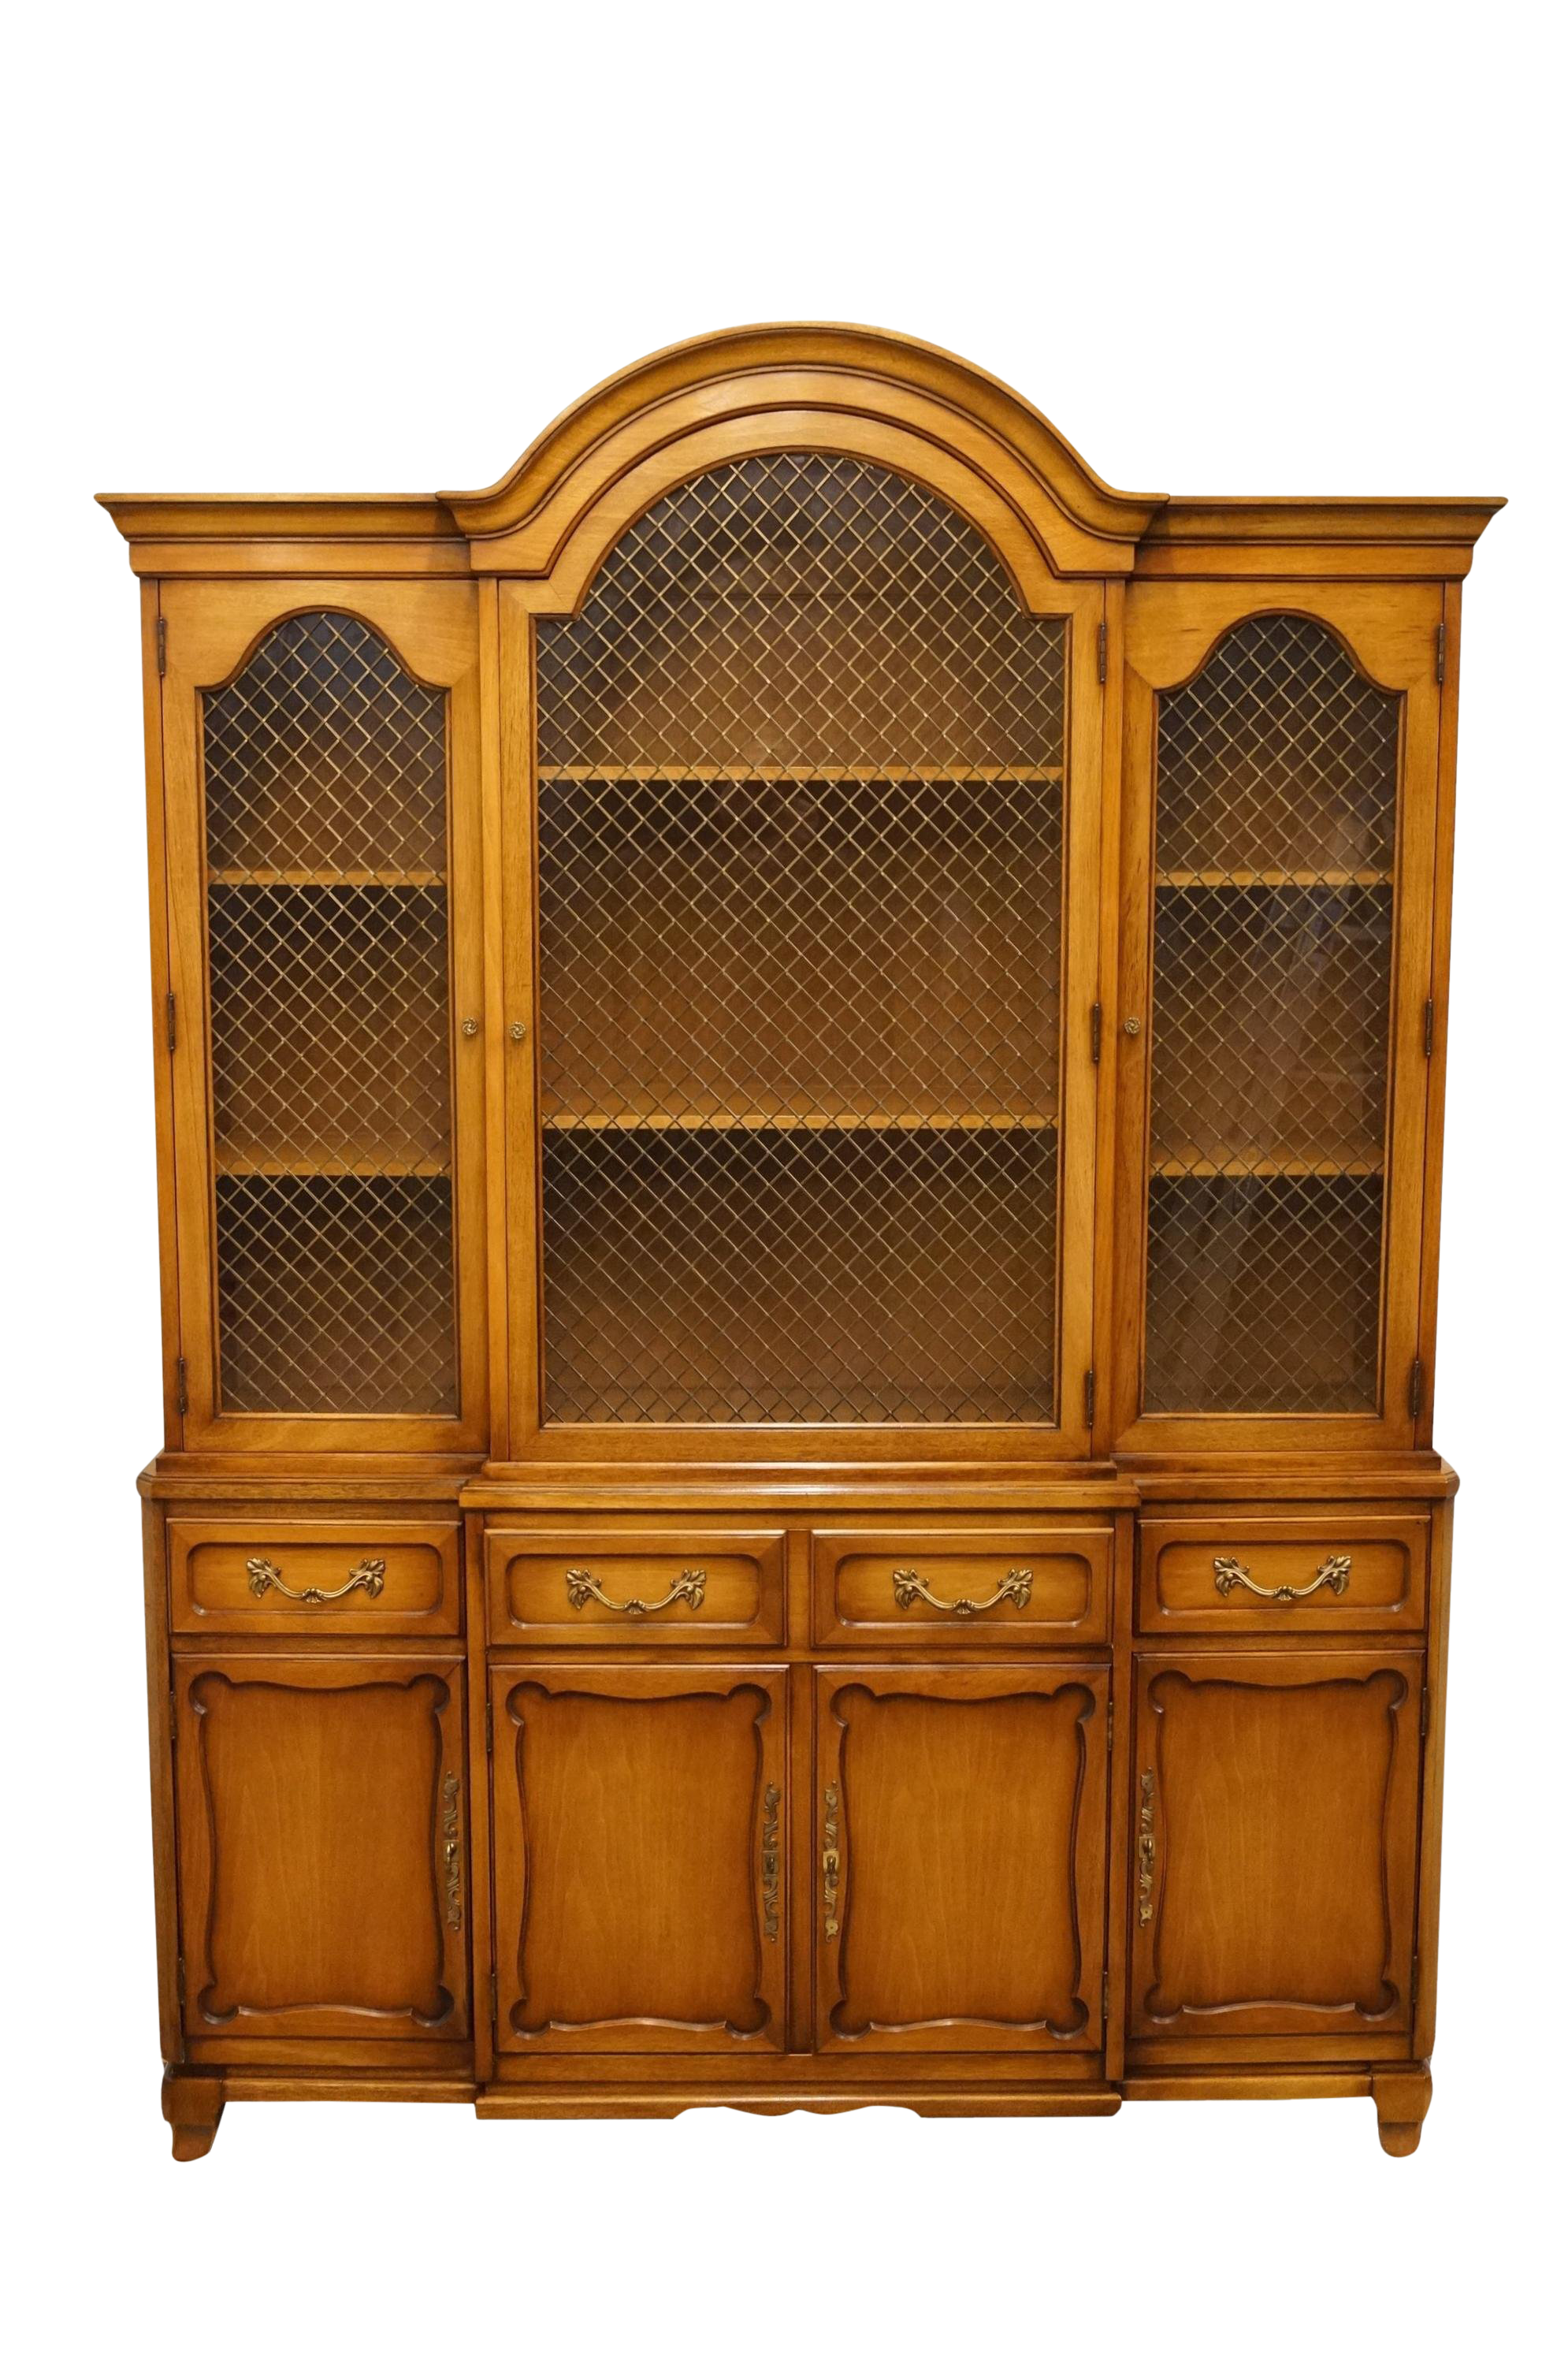 20th Century French Country Rway Furniture Secretary Desk With Illuminated  Display Hutch